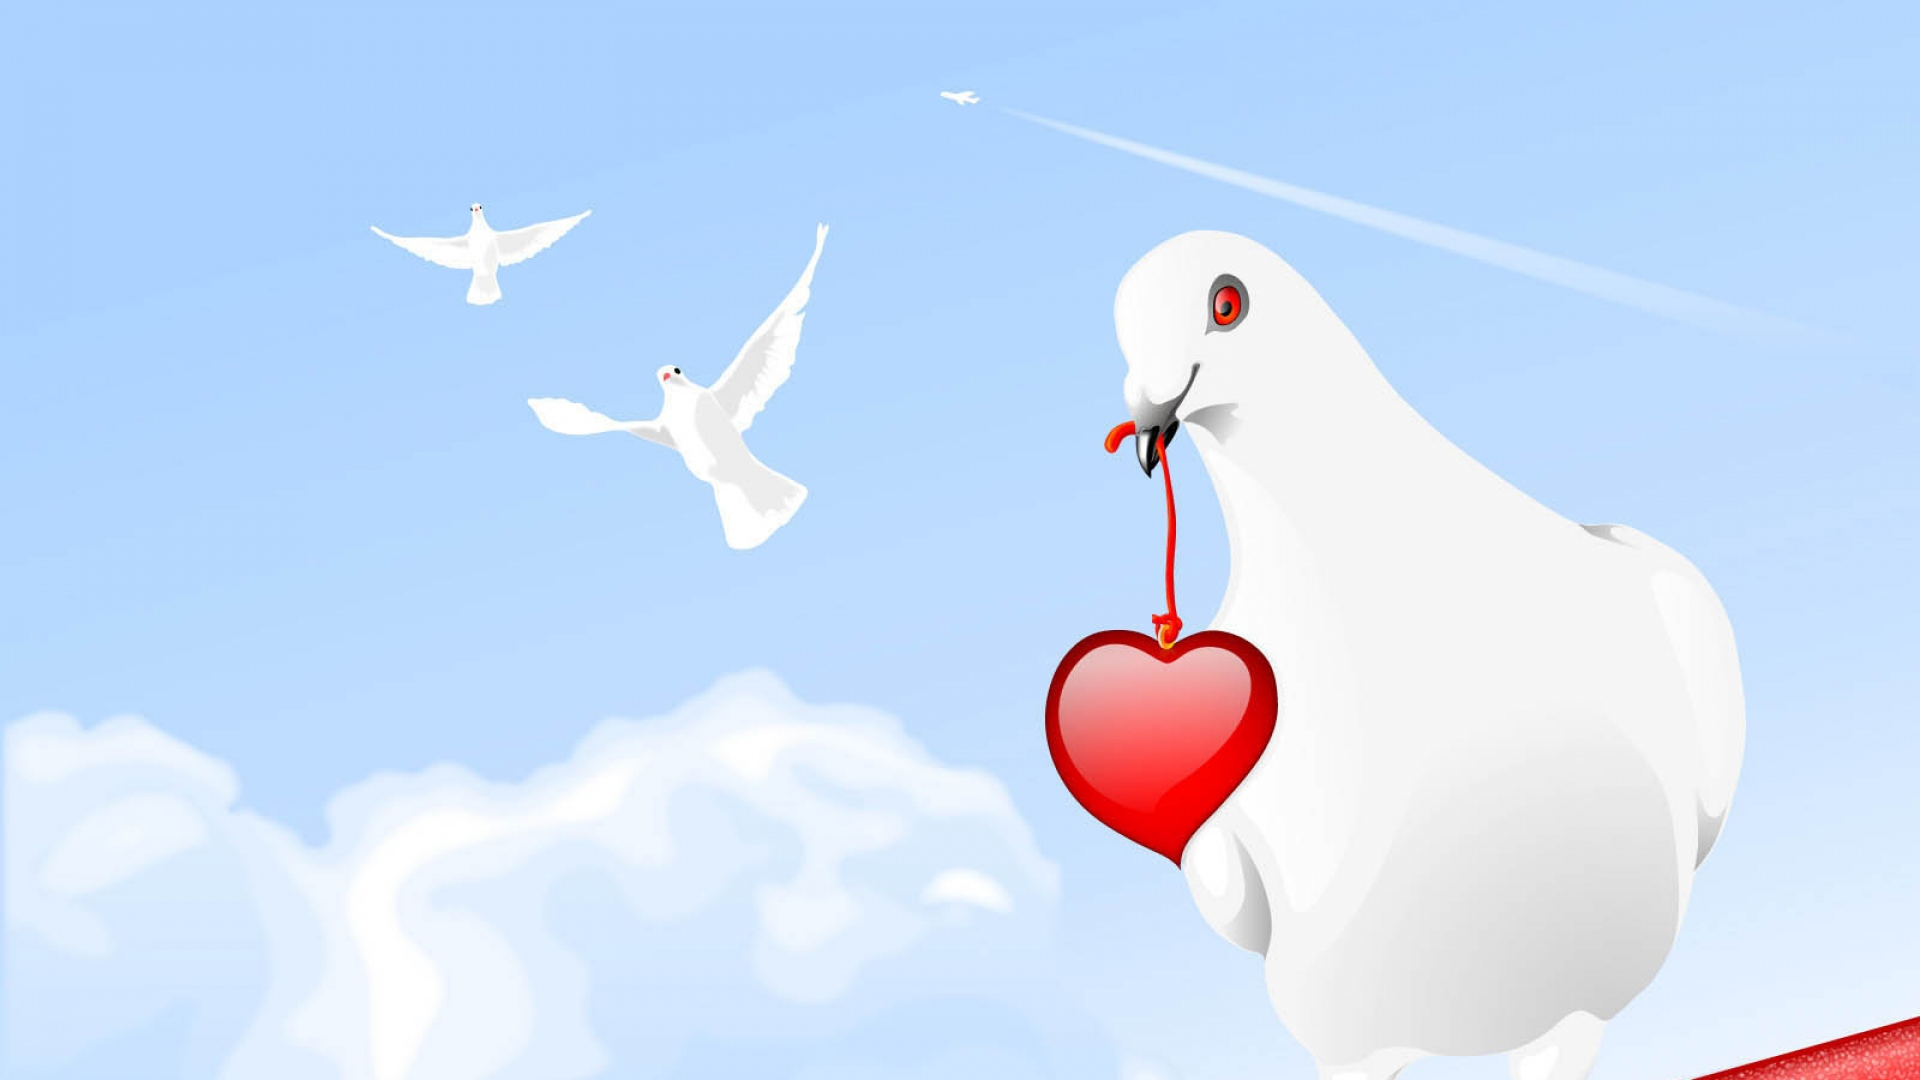 download wallpaper 1920x1080 pigeon, birds, hearts, paint full hd